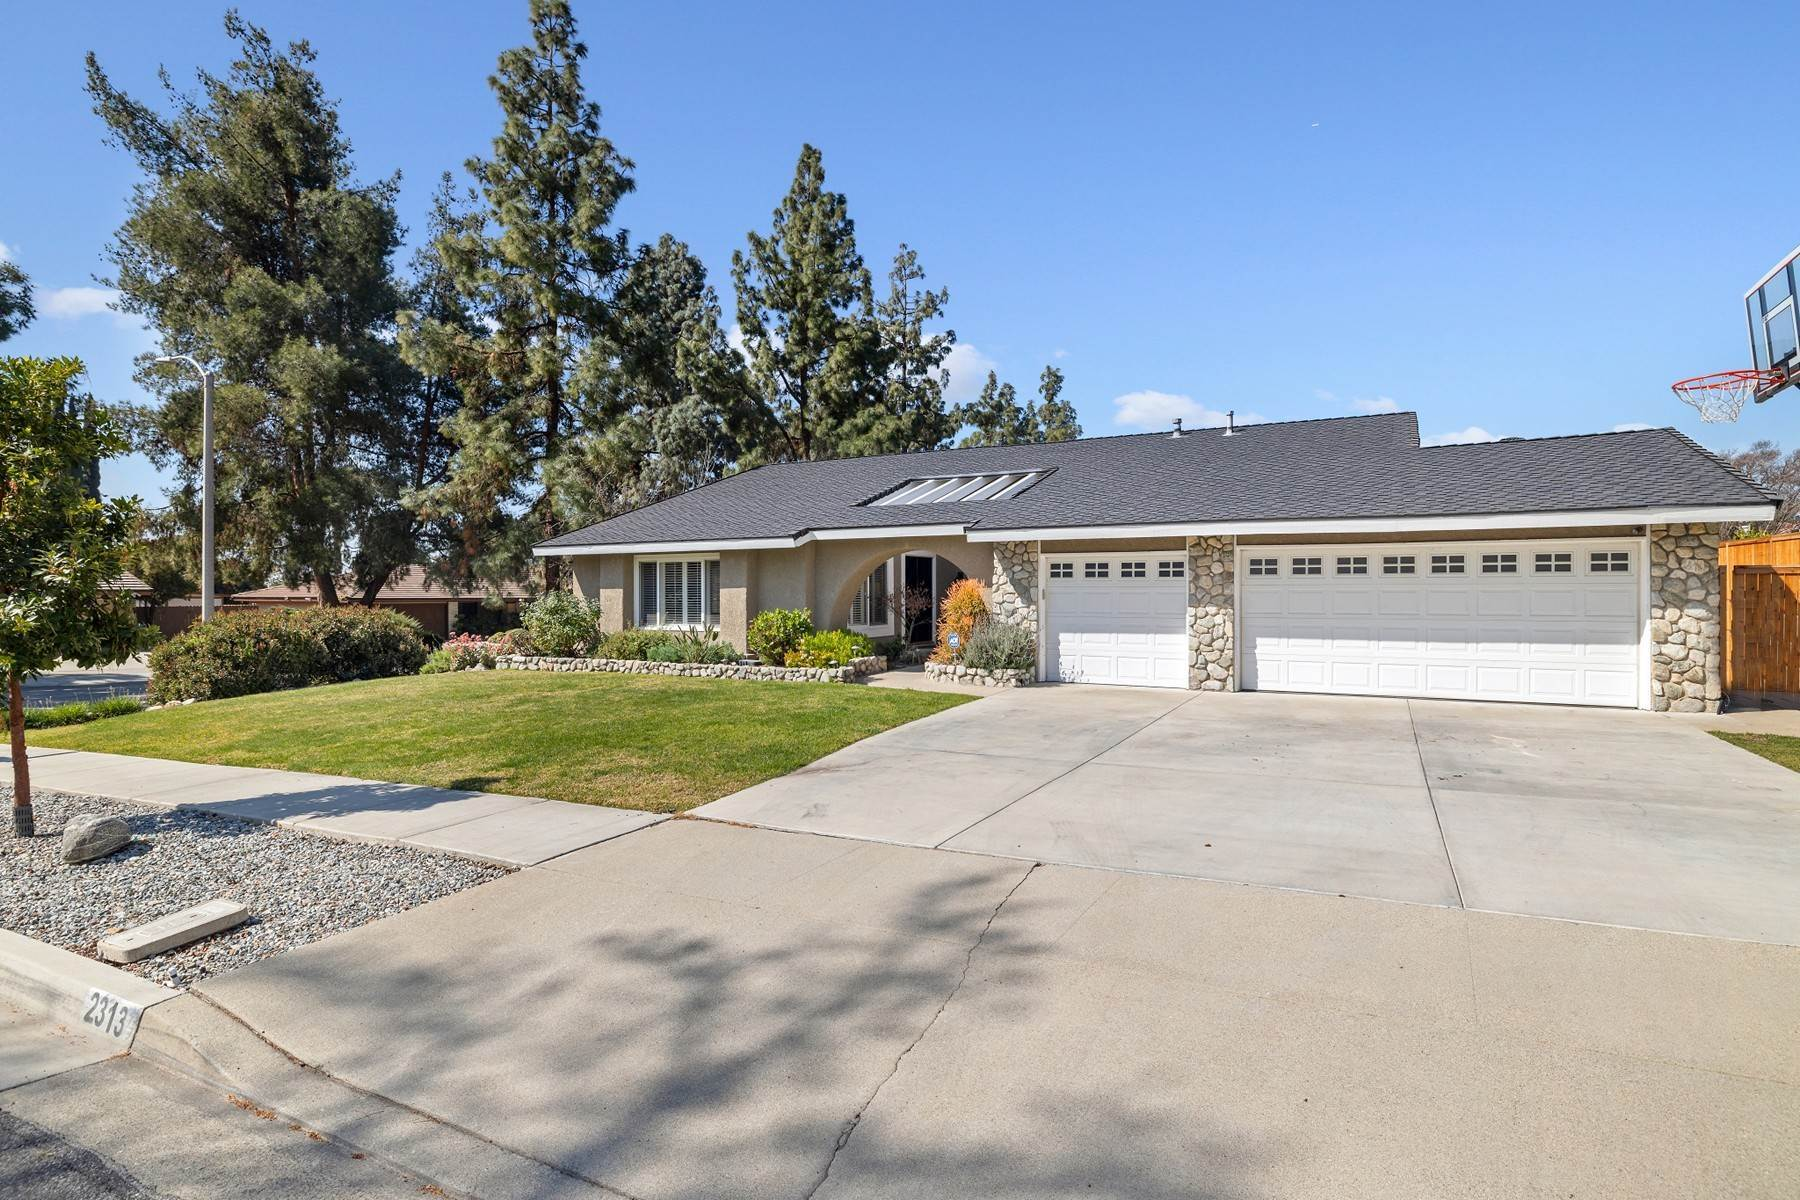 Single Family Homes for Sale at 2313 Weatherford Court, Claremont, CA 91711 2313 Weatherford Court Claremont, California 91711 United States